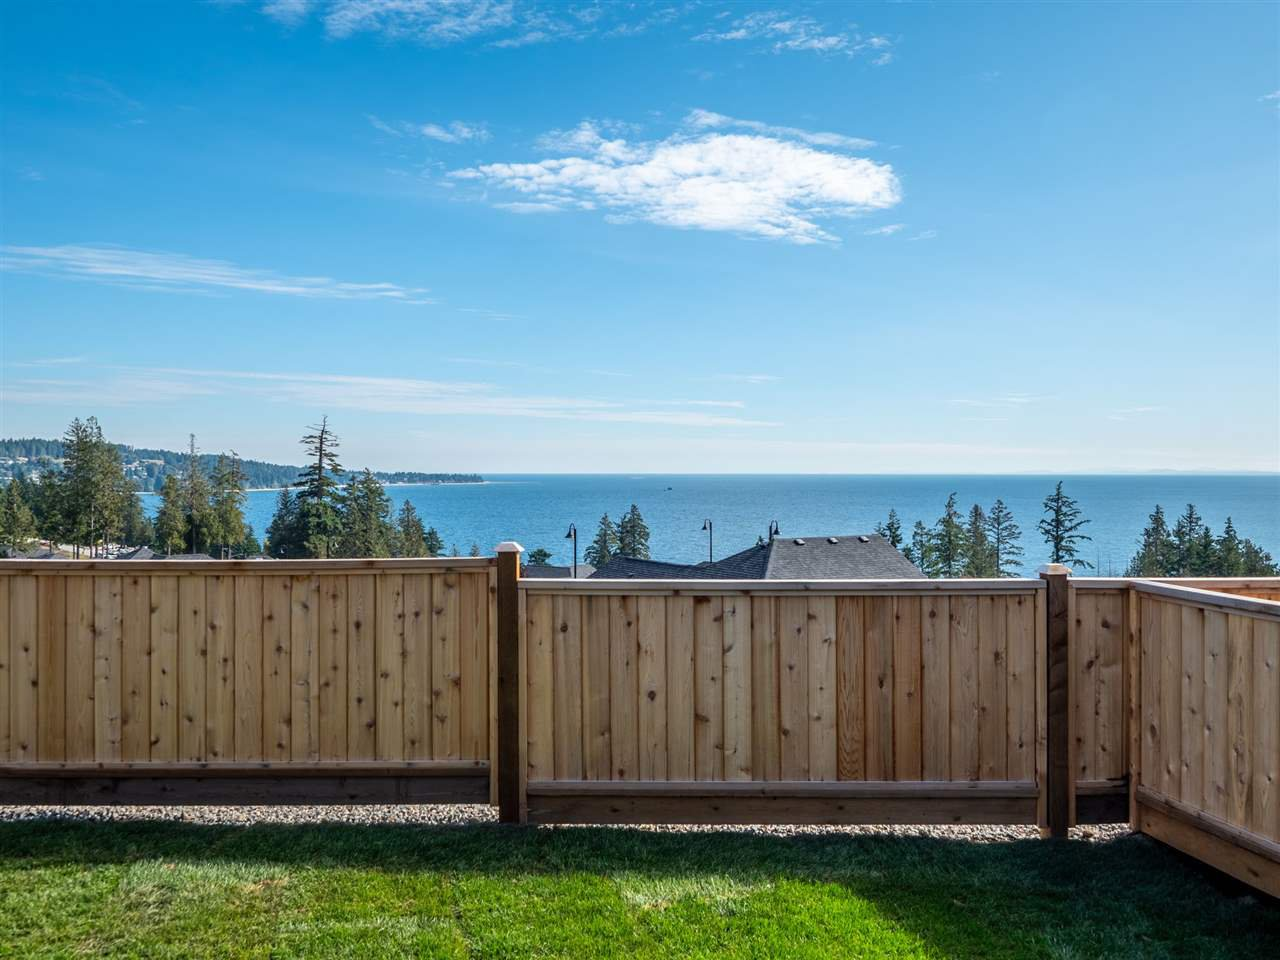 """Photo 4: Photos: 5634 KINGBIRD Crescent in Sechelt: Sechelt District House for sale in """"SilverStone Heights Phase2"""" (Sunshine Coast)  : MLS®# R2466073"""